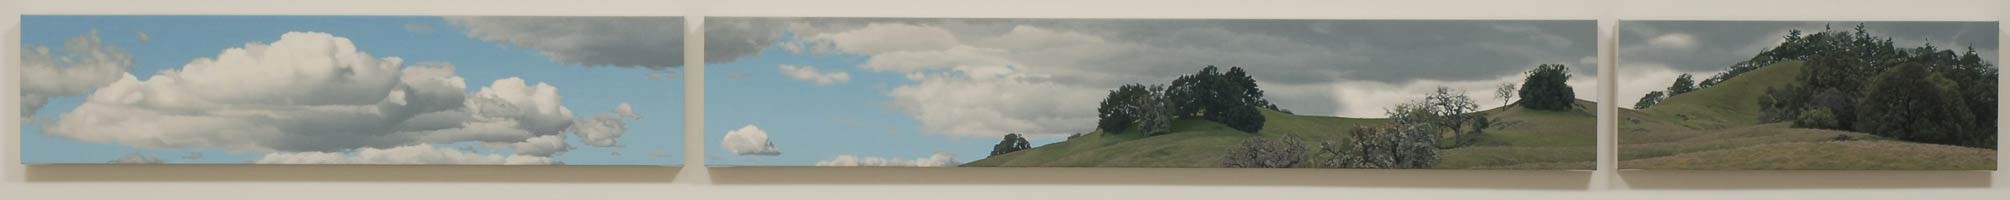 Ridge in Winter, 2005 - 06<br>